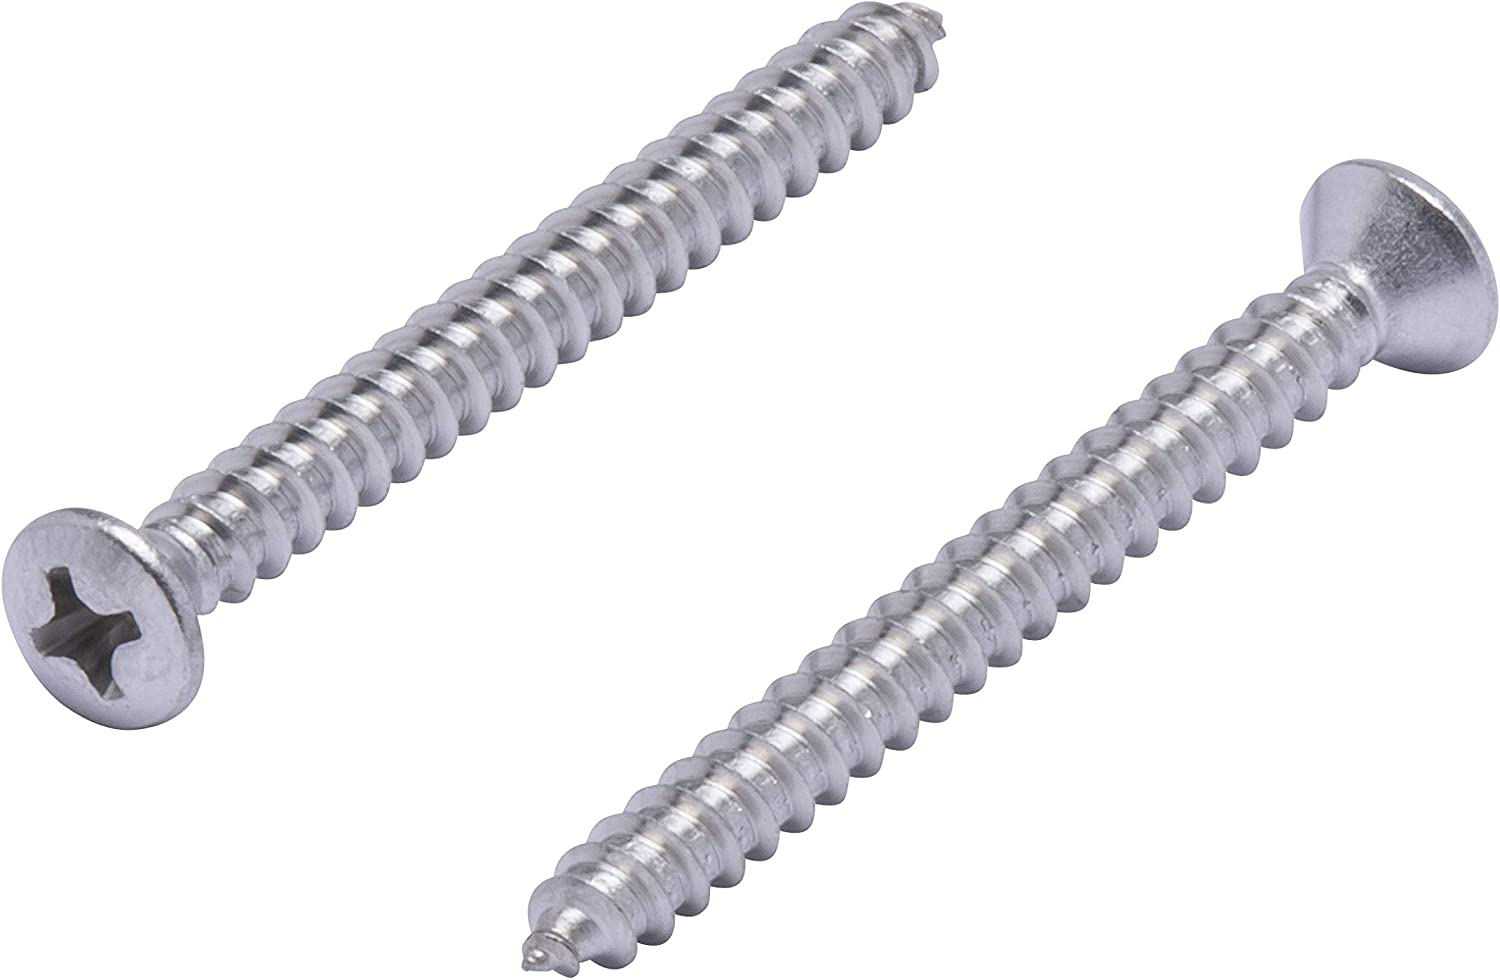 M12-1.25 x 45 or M12x45 12mm x 45mm J.I.S 50 Small Head Hex Bolt 10.9 Zinc